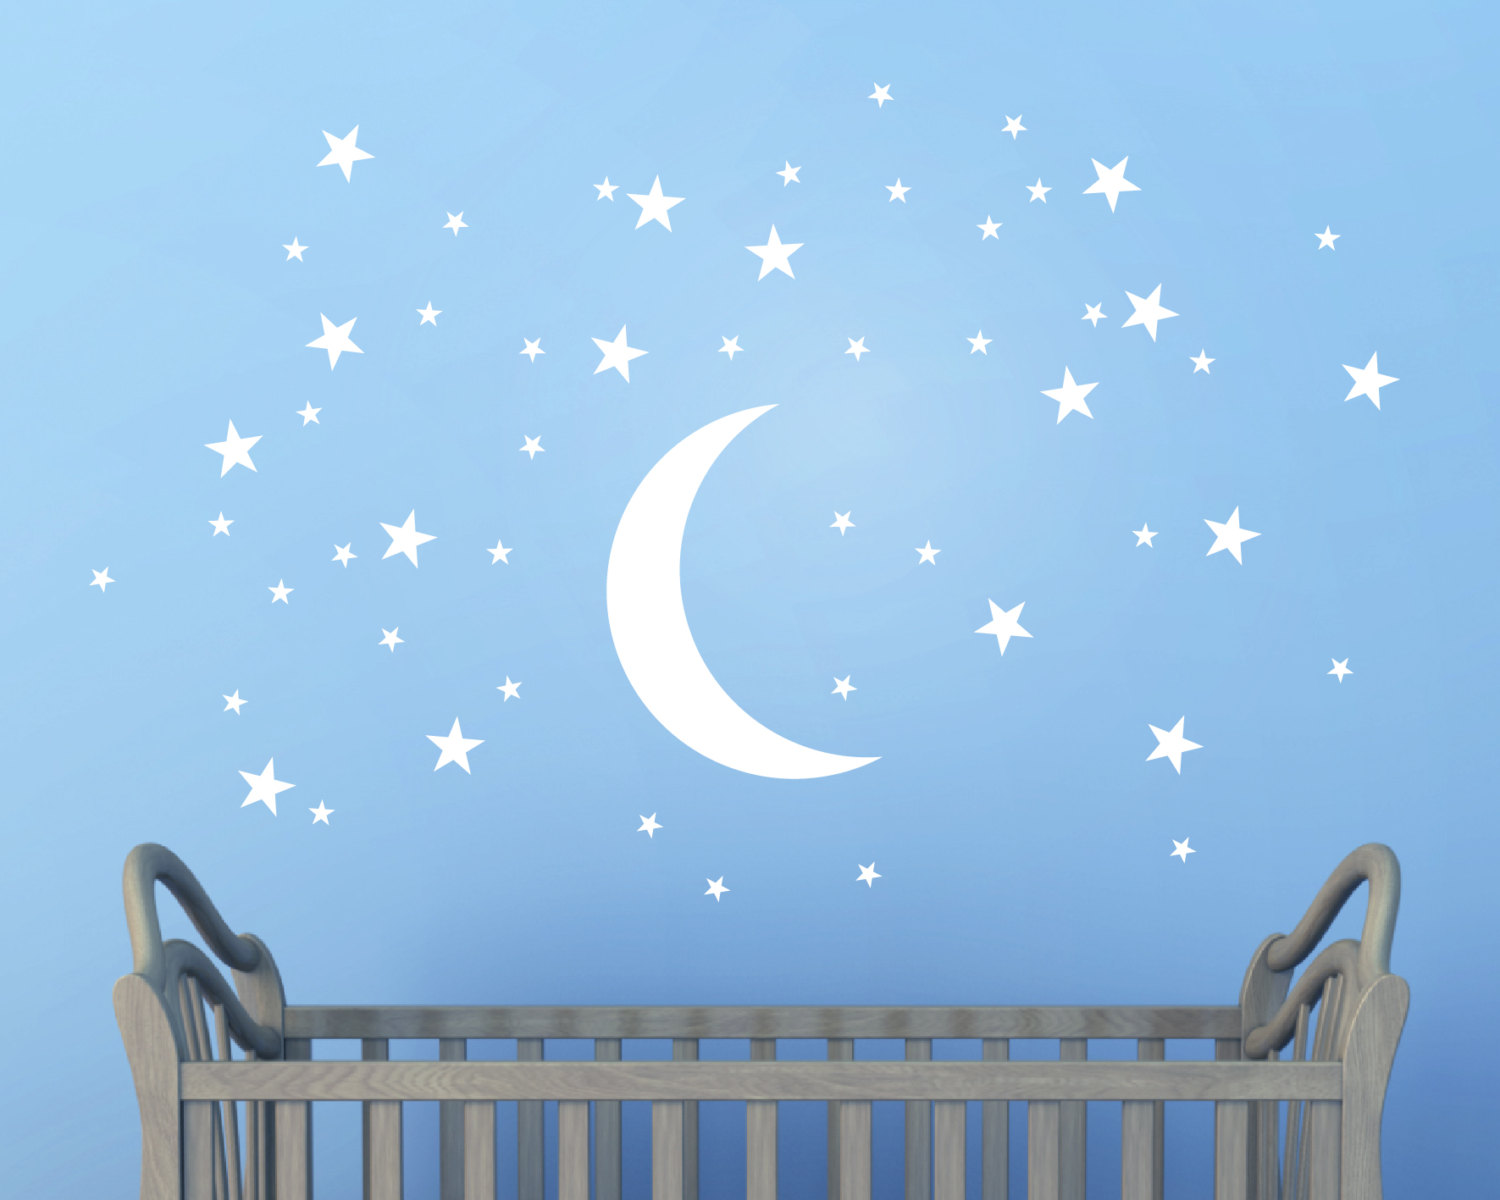 Childrens Bedroom Wall Stickers Removable Moon And Stars Wall Stickers Wall Murals Wall Art